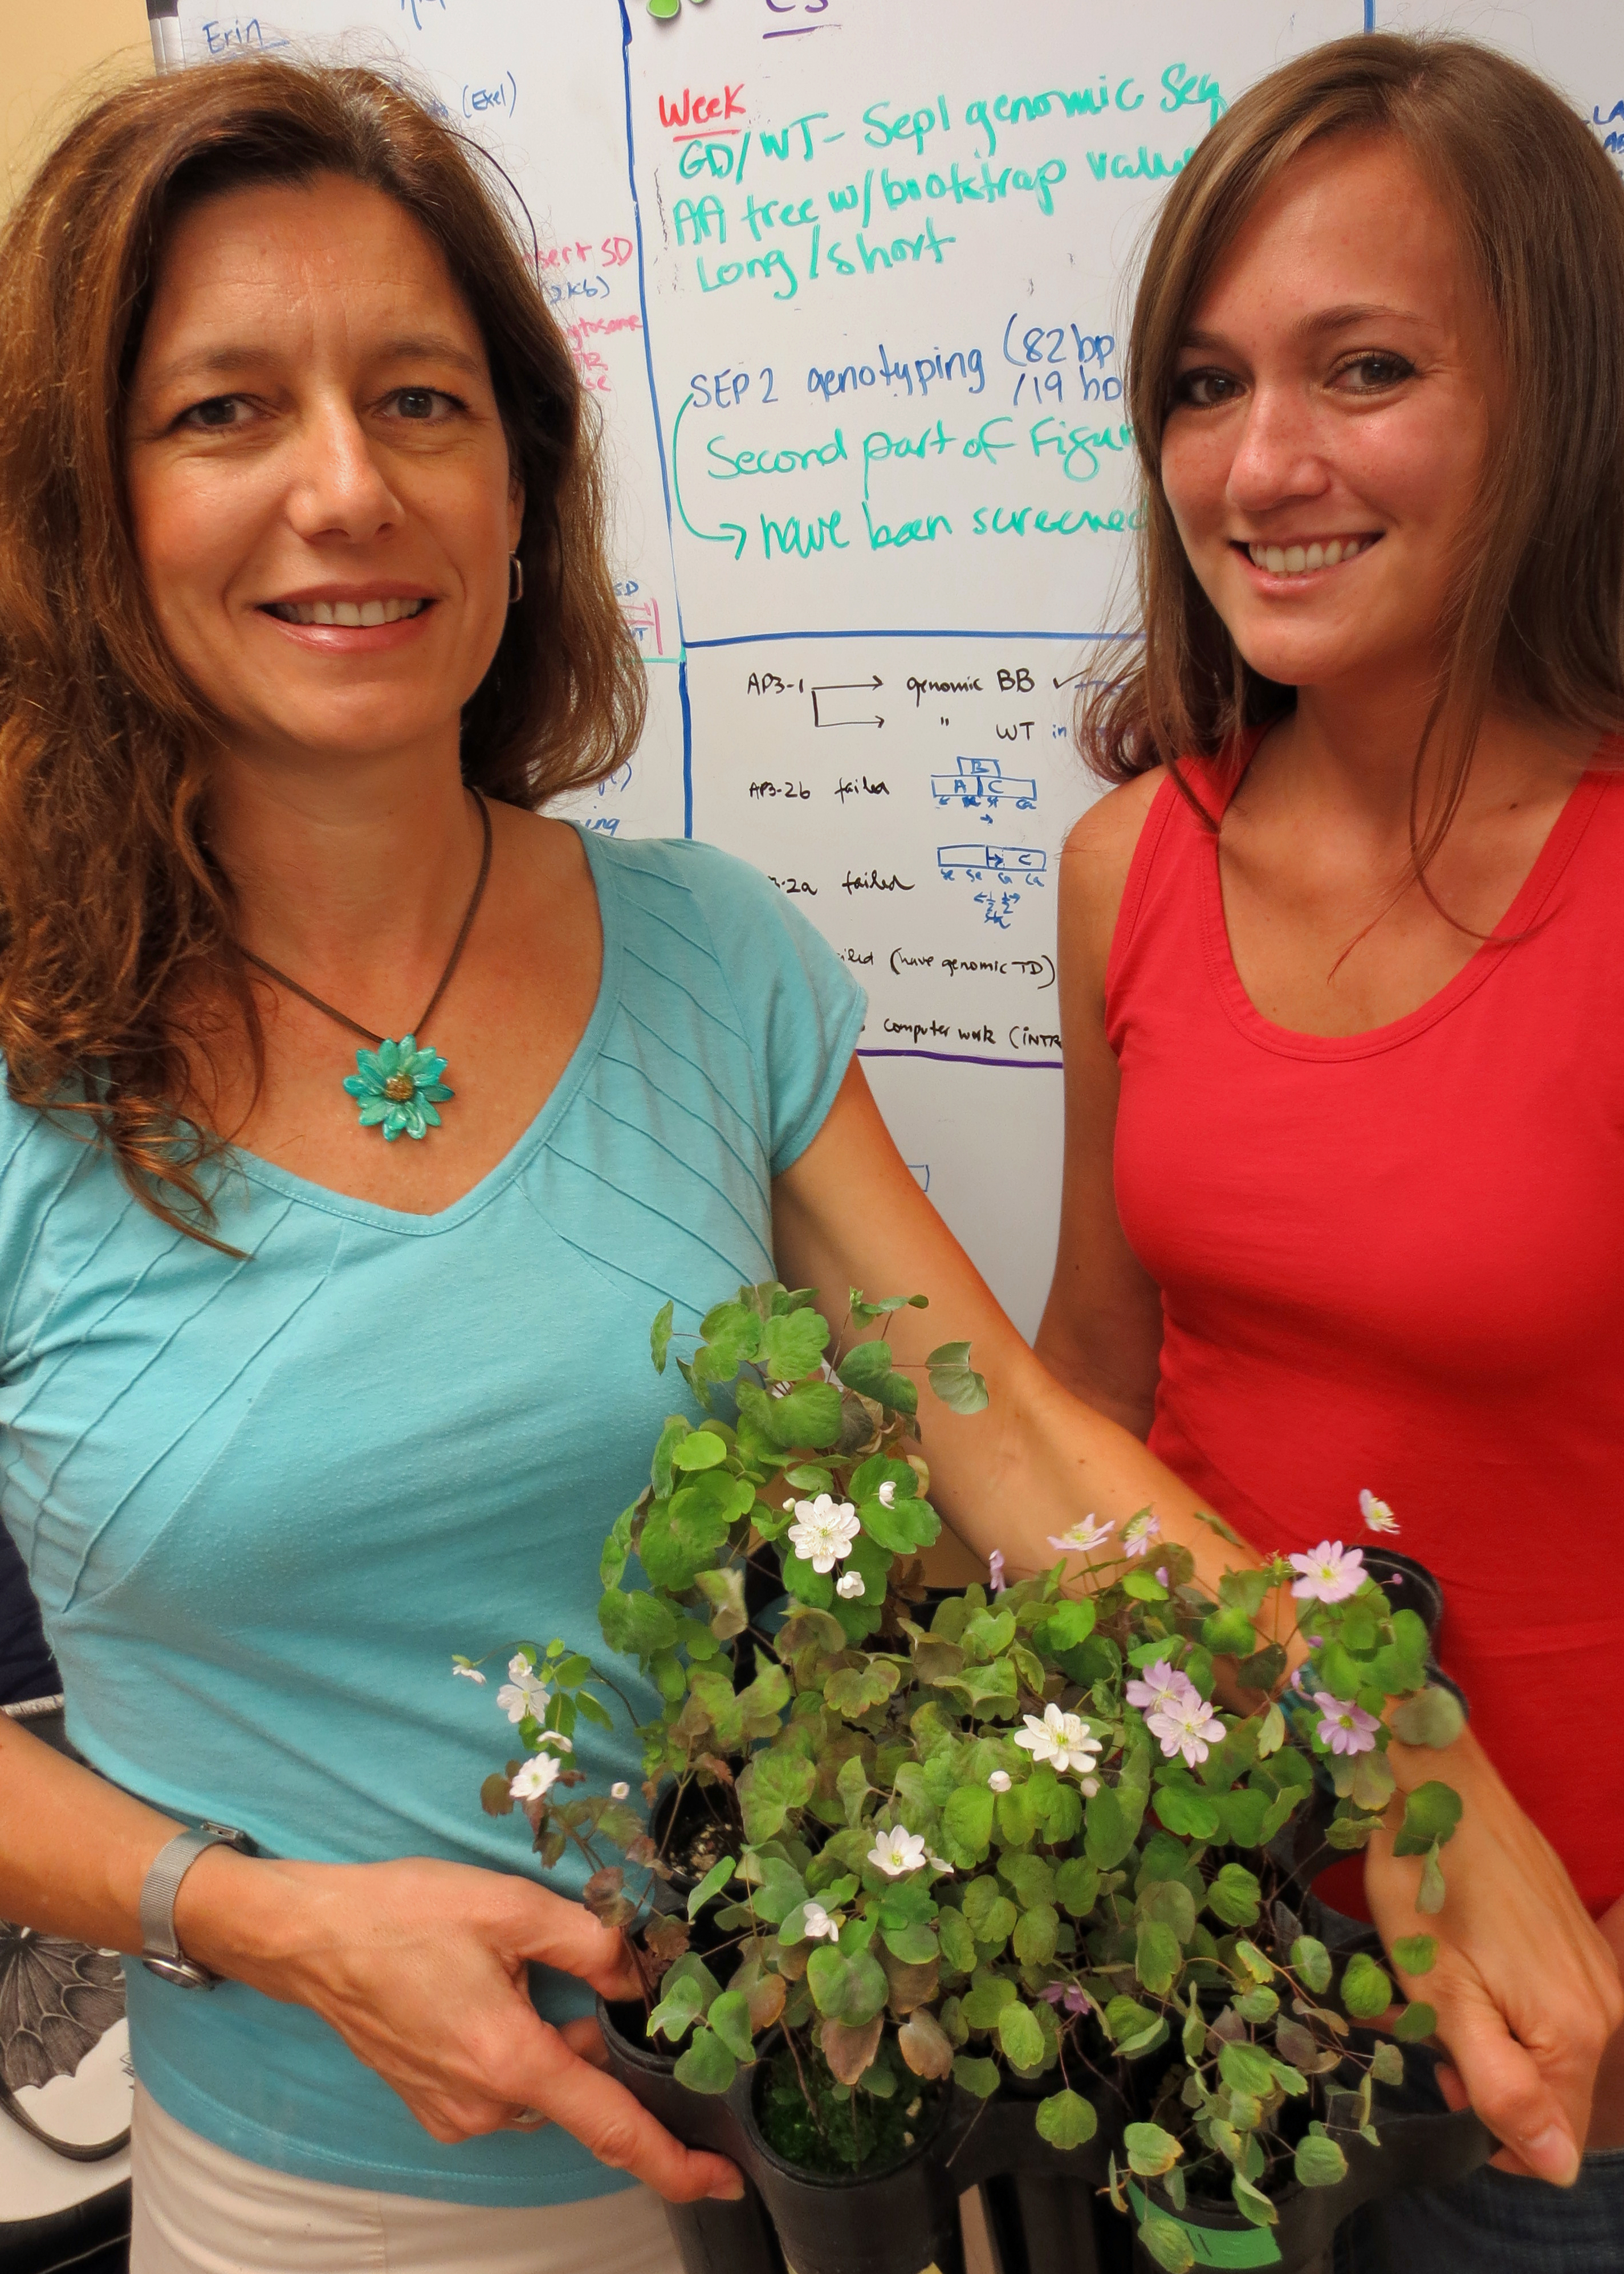 Verónica Di Stilio and Kelsey Galimba with the wild type of plant they studied